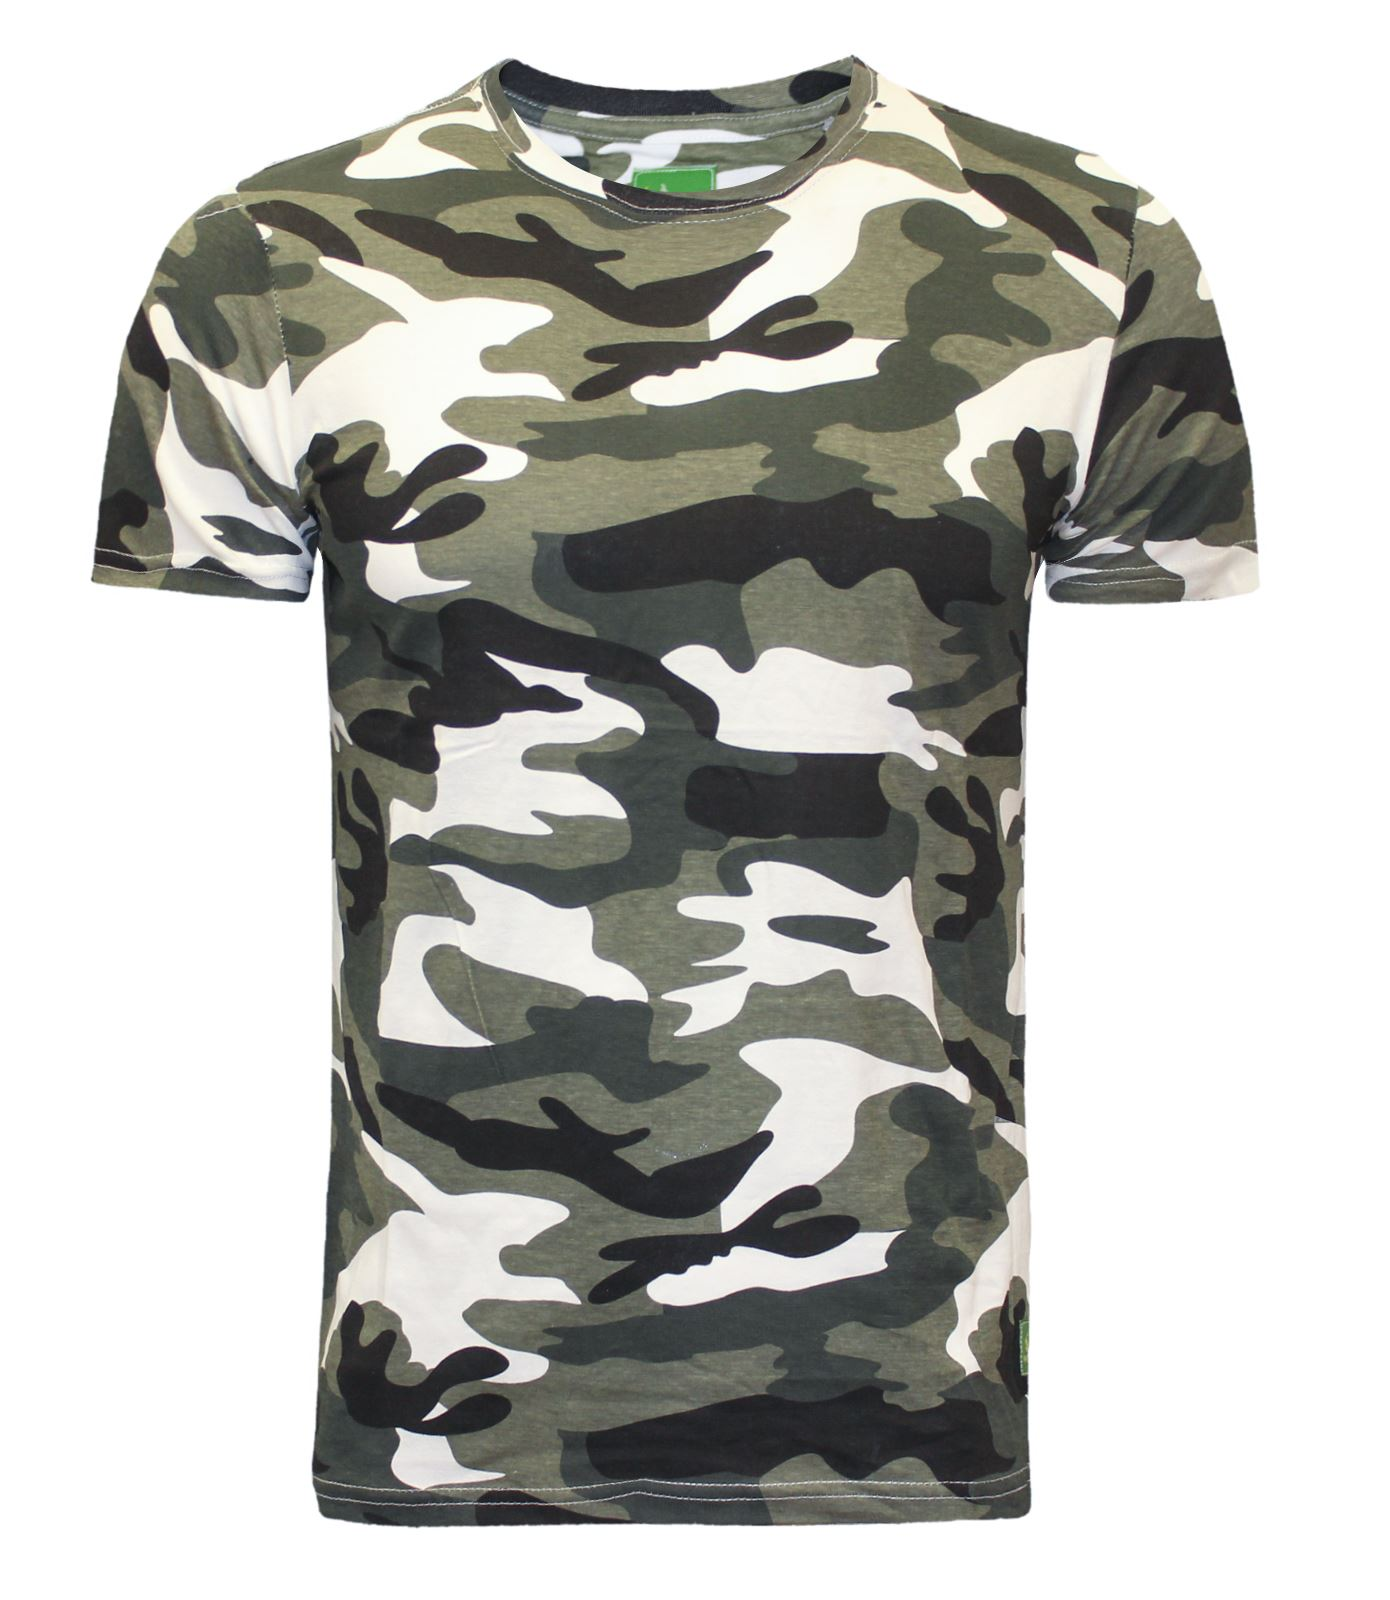 new mens military camouflage camo t shirt army combat green white blue brown ebay. Black Bedroom Furniture Sets. Home Design Ideas